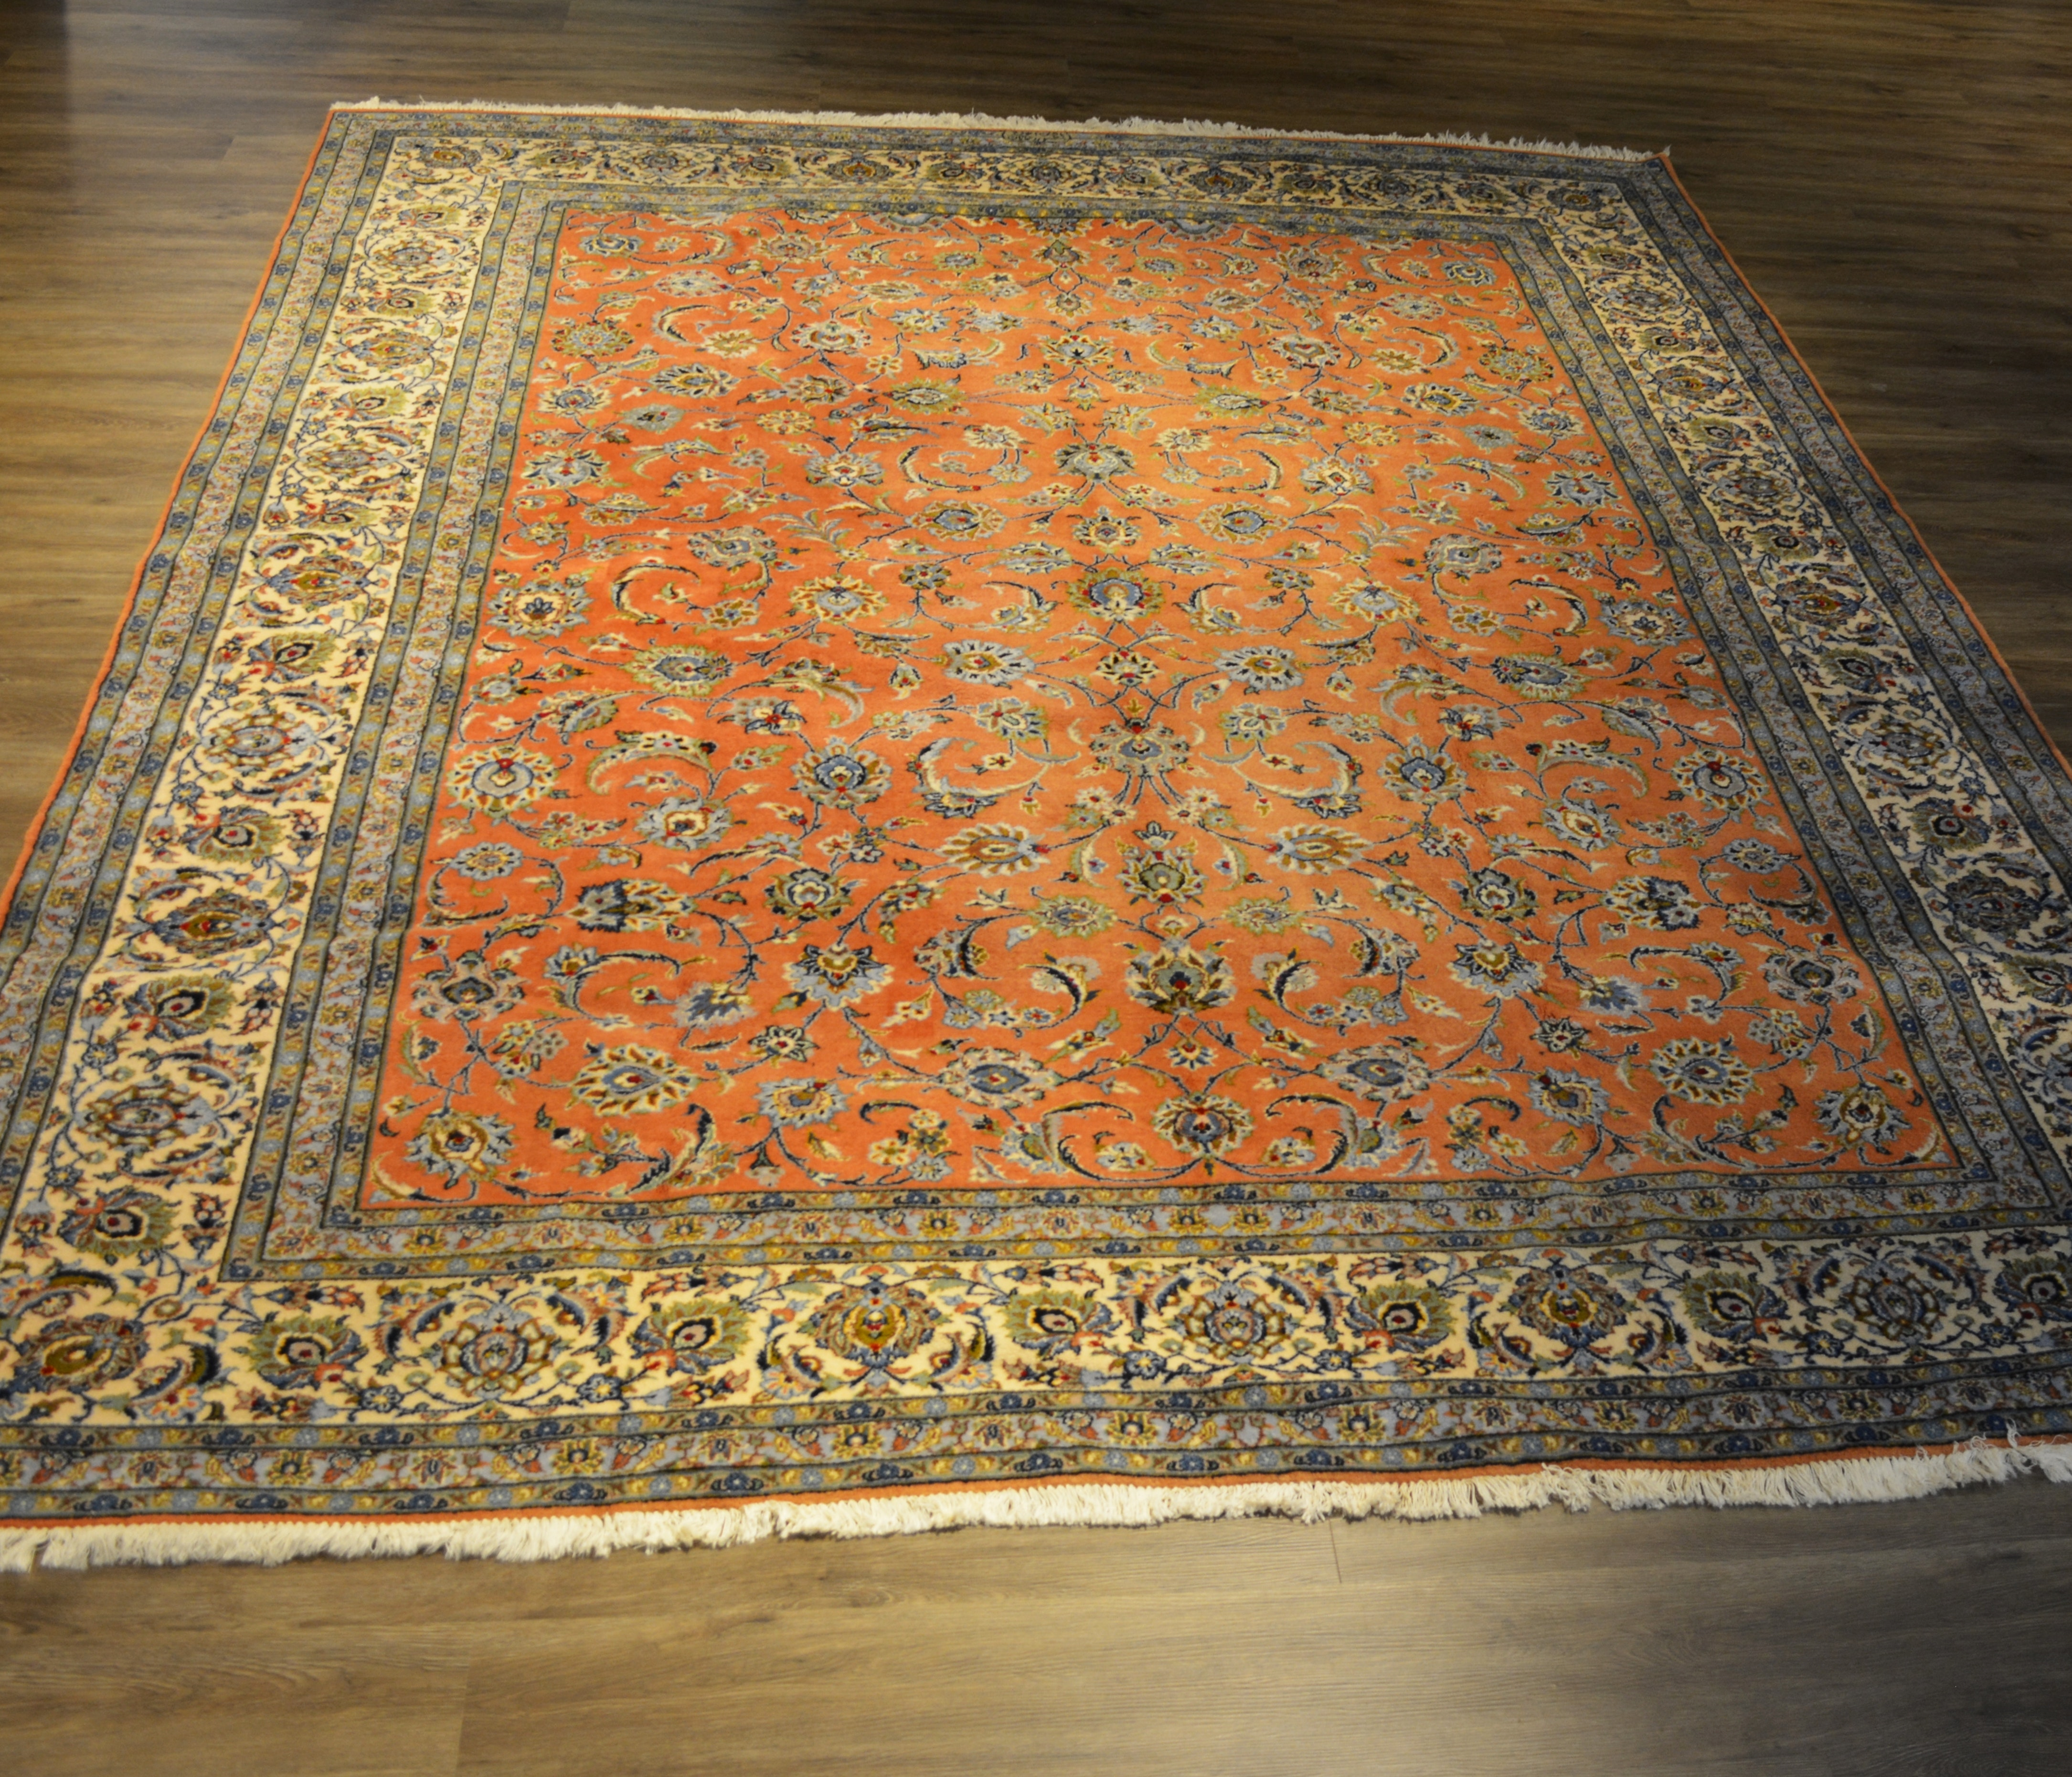 Vintage Signed Hand-Knotted Persian Kashan Wool Area Rug